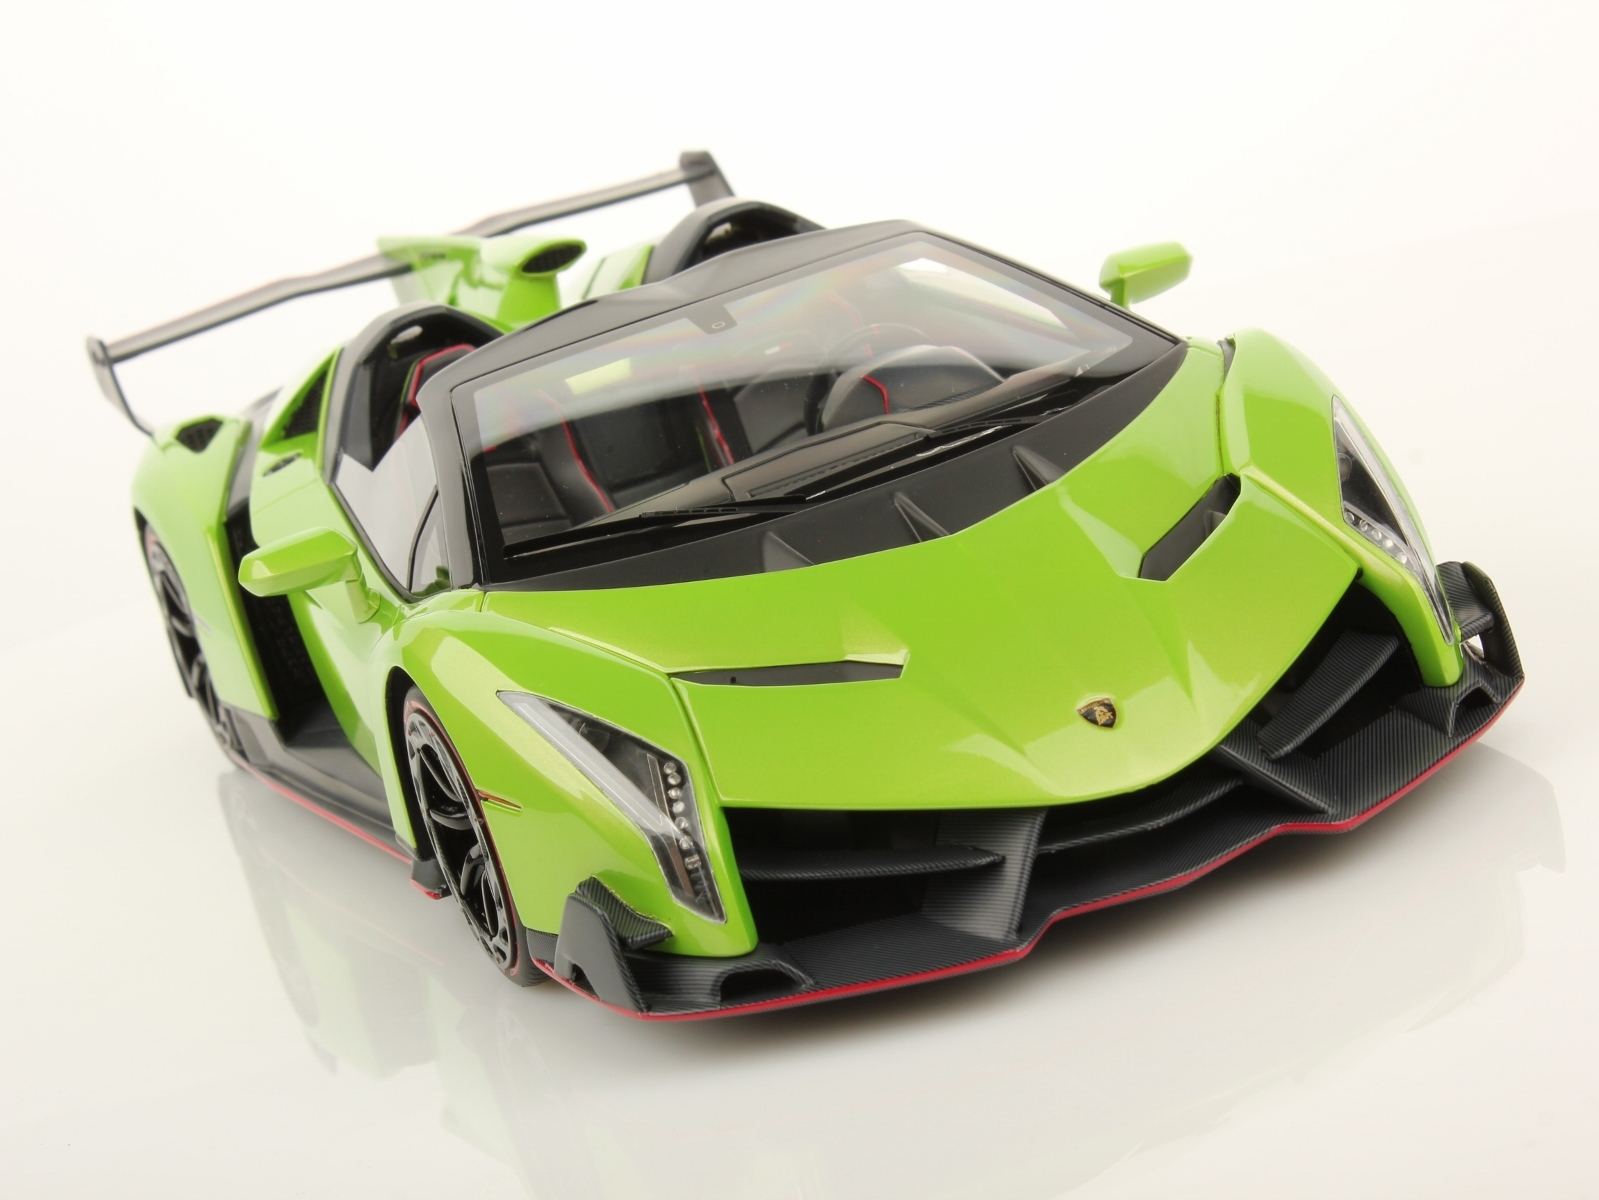 most expensive rc car in the world with Mr Collection Releases 118 Scale Lamborghini Veneno Roadster In Rosso Mars Nero Nemesis Metalluro And Verde Ithaca on Track additionally Mr Collection Releases 118 Scale Lamborghini Veneno Roadster In Rosso Mars Nero Nemesis Metalluro And Verde Ithaca likewise 2012 Lexus Lfa Wallpapers together with Paris Hilton Dresses To Match Her White Lexus Lfa 77924 as well P 137240.